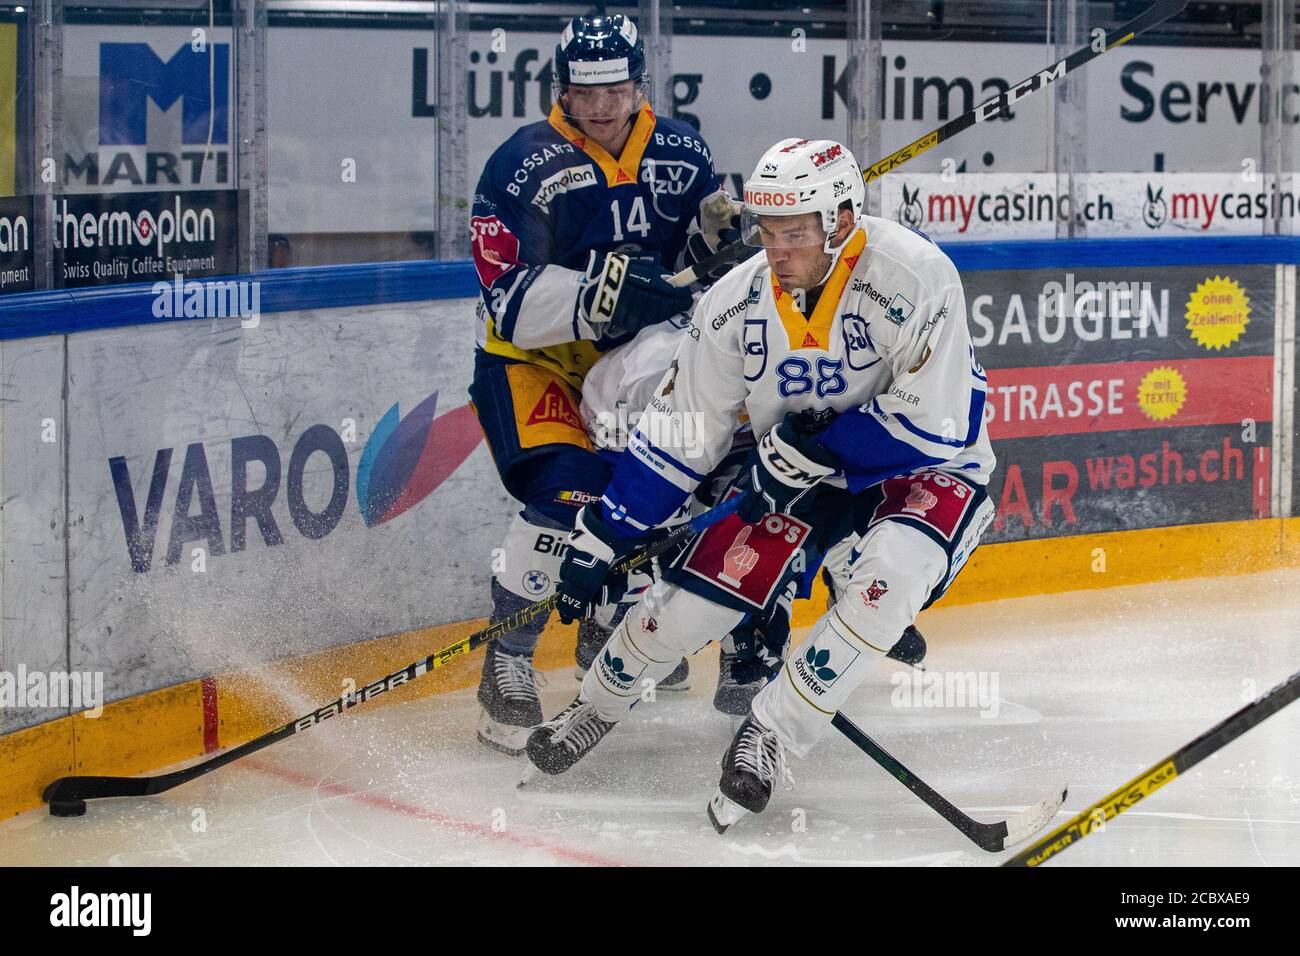 Anton Gradin # 88 (EVZ Academy) in front of Livio Stadler # 14 (EV Zug) on the puck during the National and Swiss League preparation ice hockey game between EV Zug and the EVZ Academy on August 16, 2020 in the Bossard Arena in Zug. Credit: SPP Sport Press Photo. /Alamy Live News Stock Photo